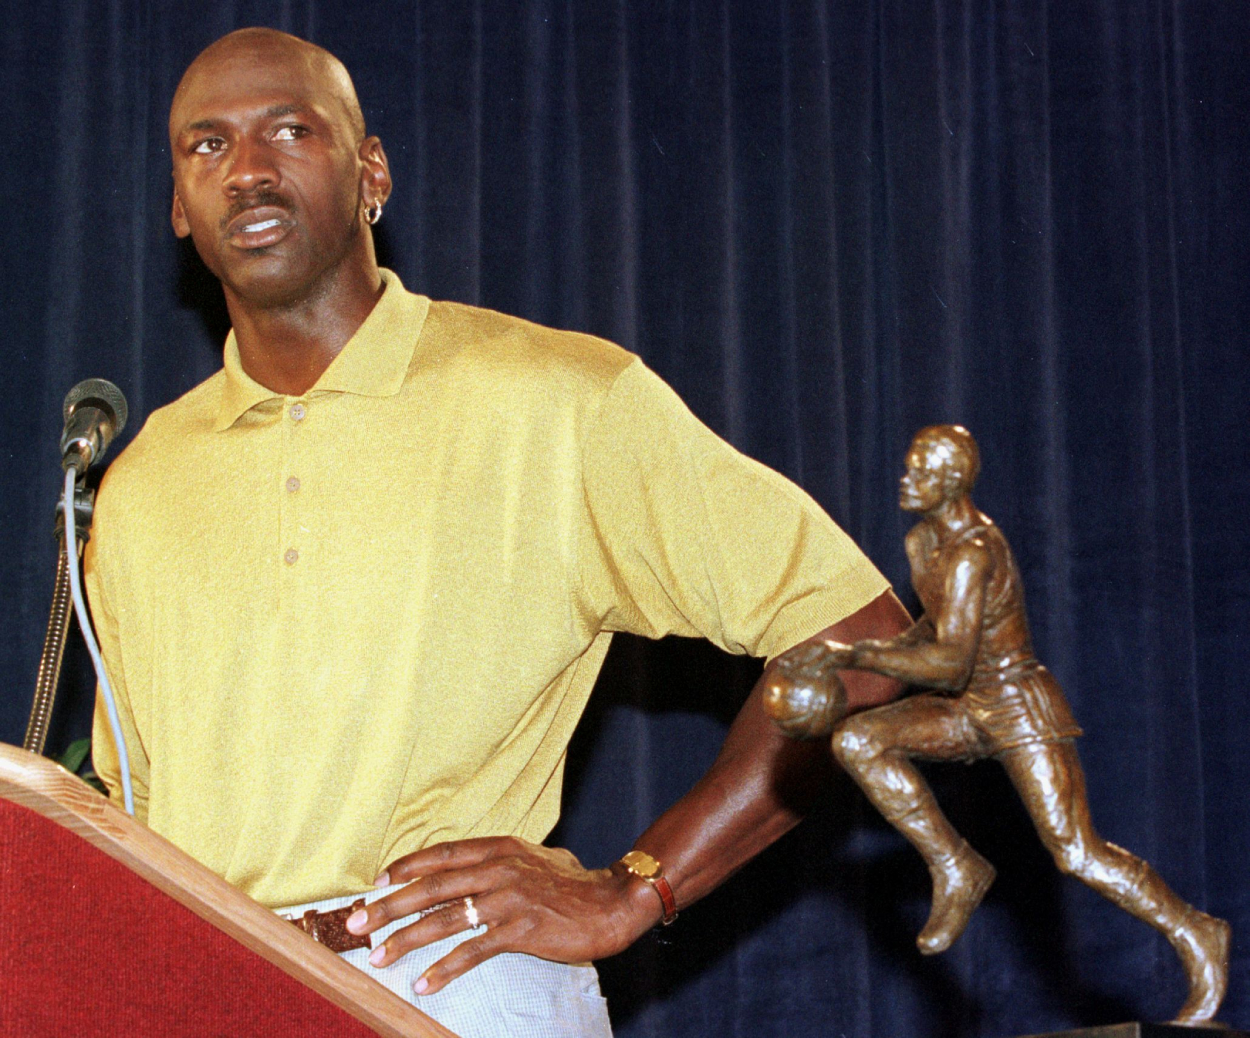 Michael Jordan Was Disrespectfully Passed Over in Favor of an Alleged Cheater by a Famous TV Personality